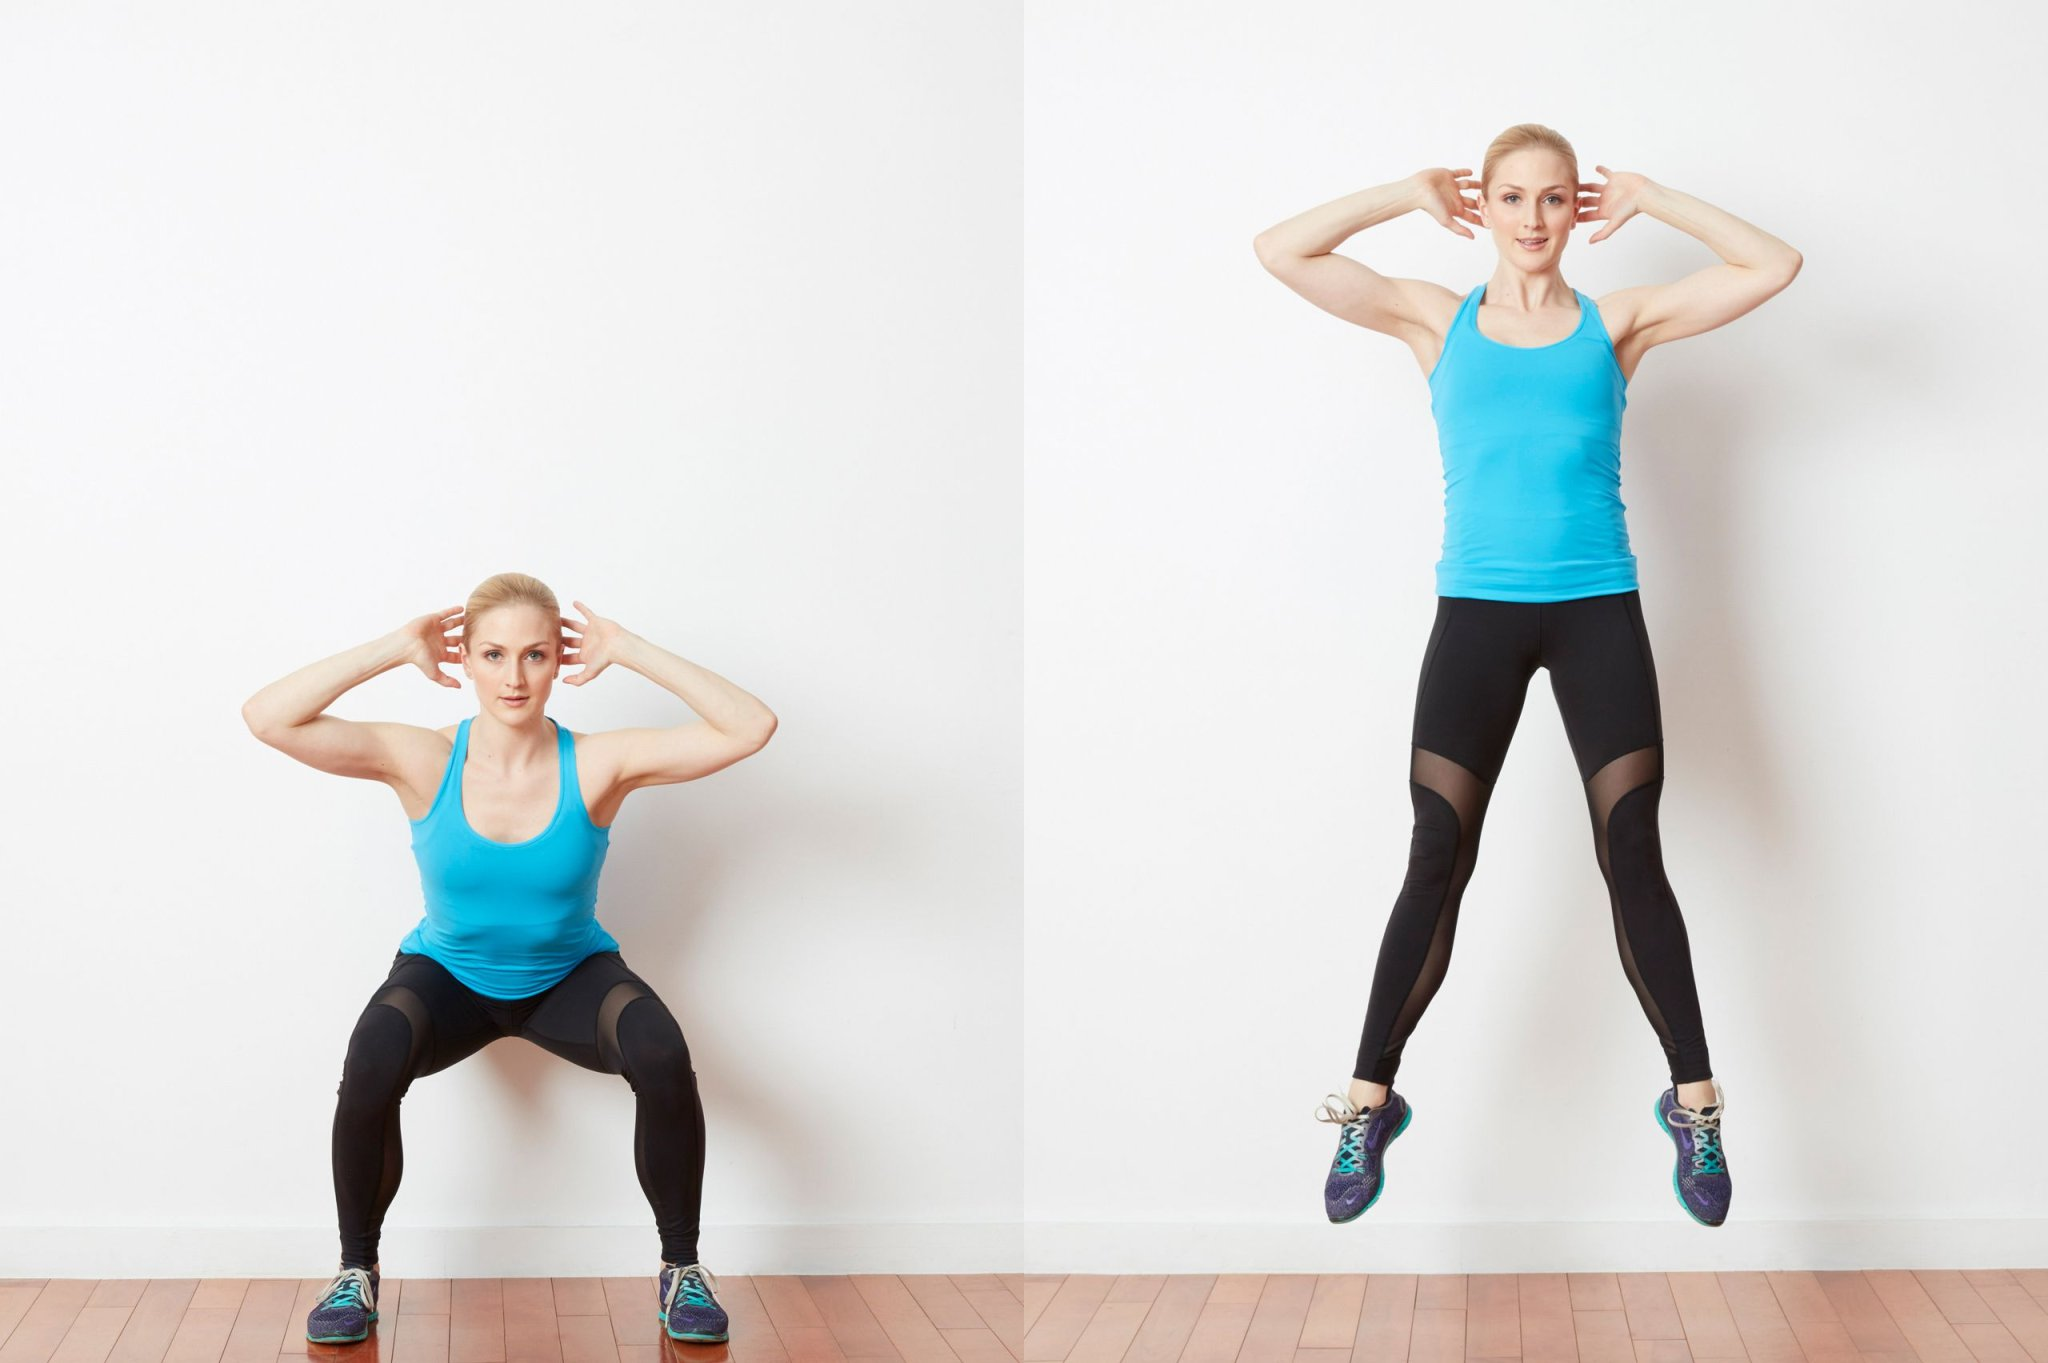 Try This 10-Minute Workout With No Equipment Required